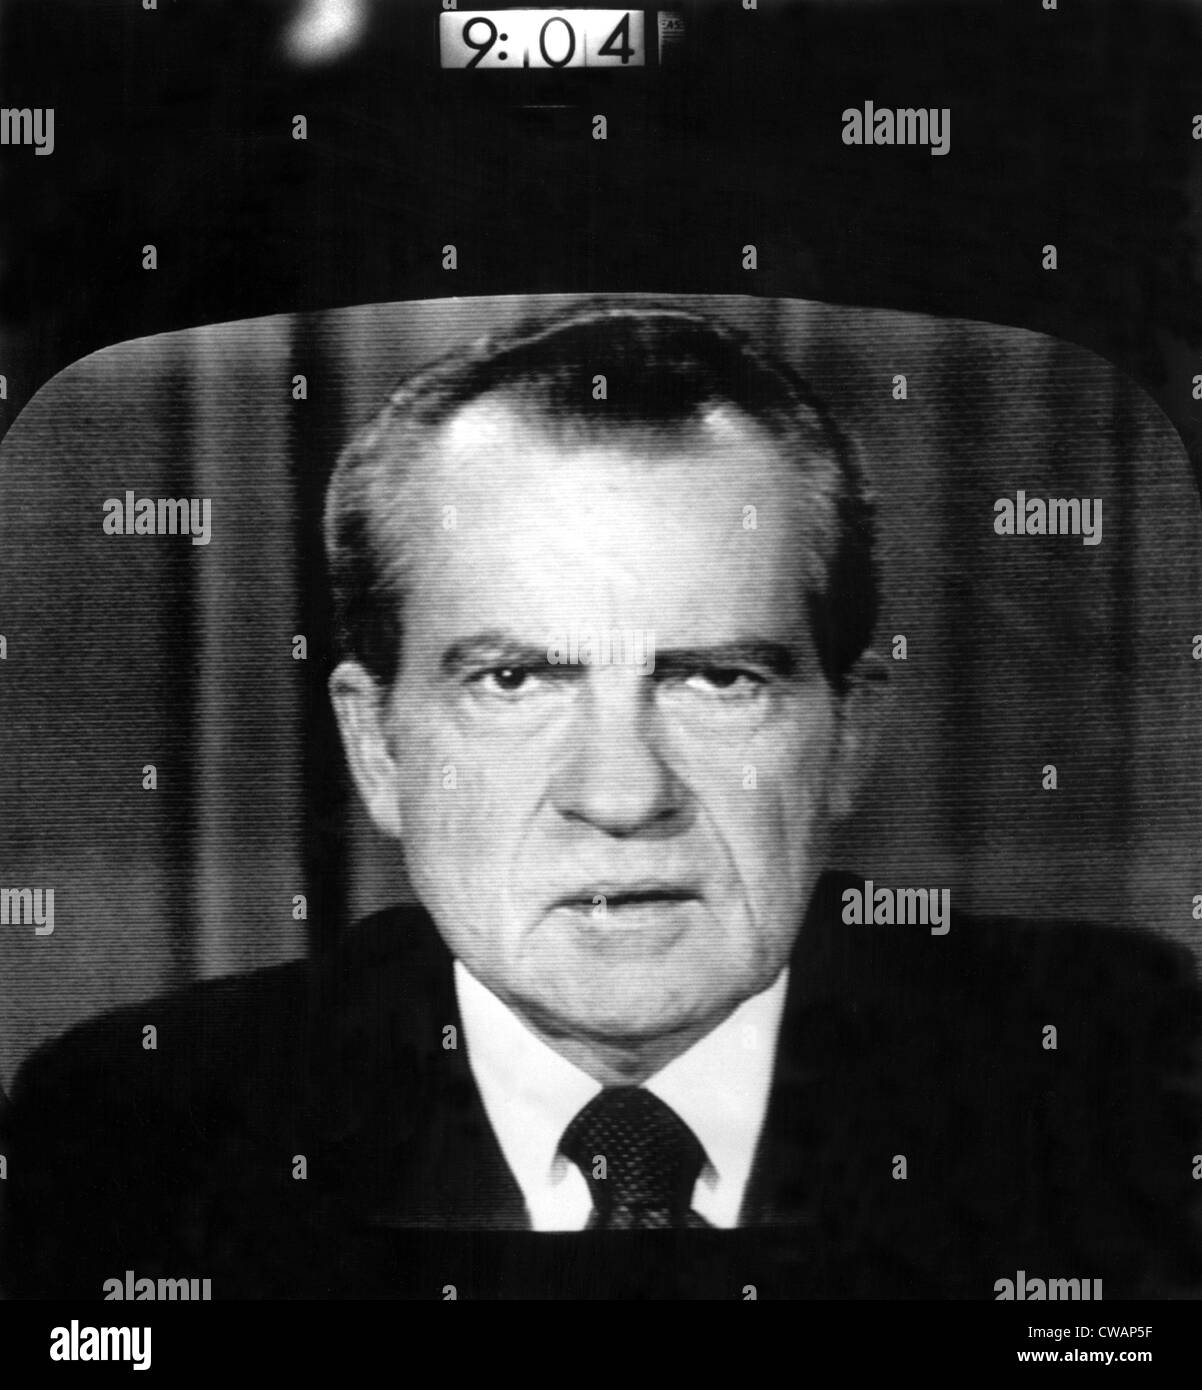 President Richard Nixon, with digital clock indicating the exact minute he resigned the Presidency, 08/08/74. Courtesy: - Stock Image